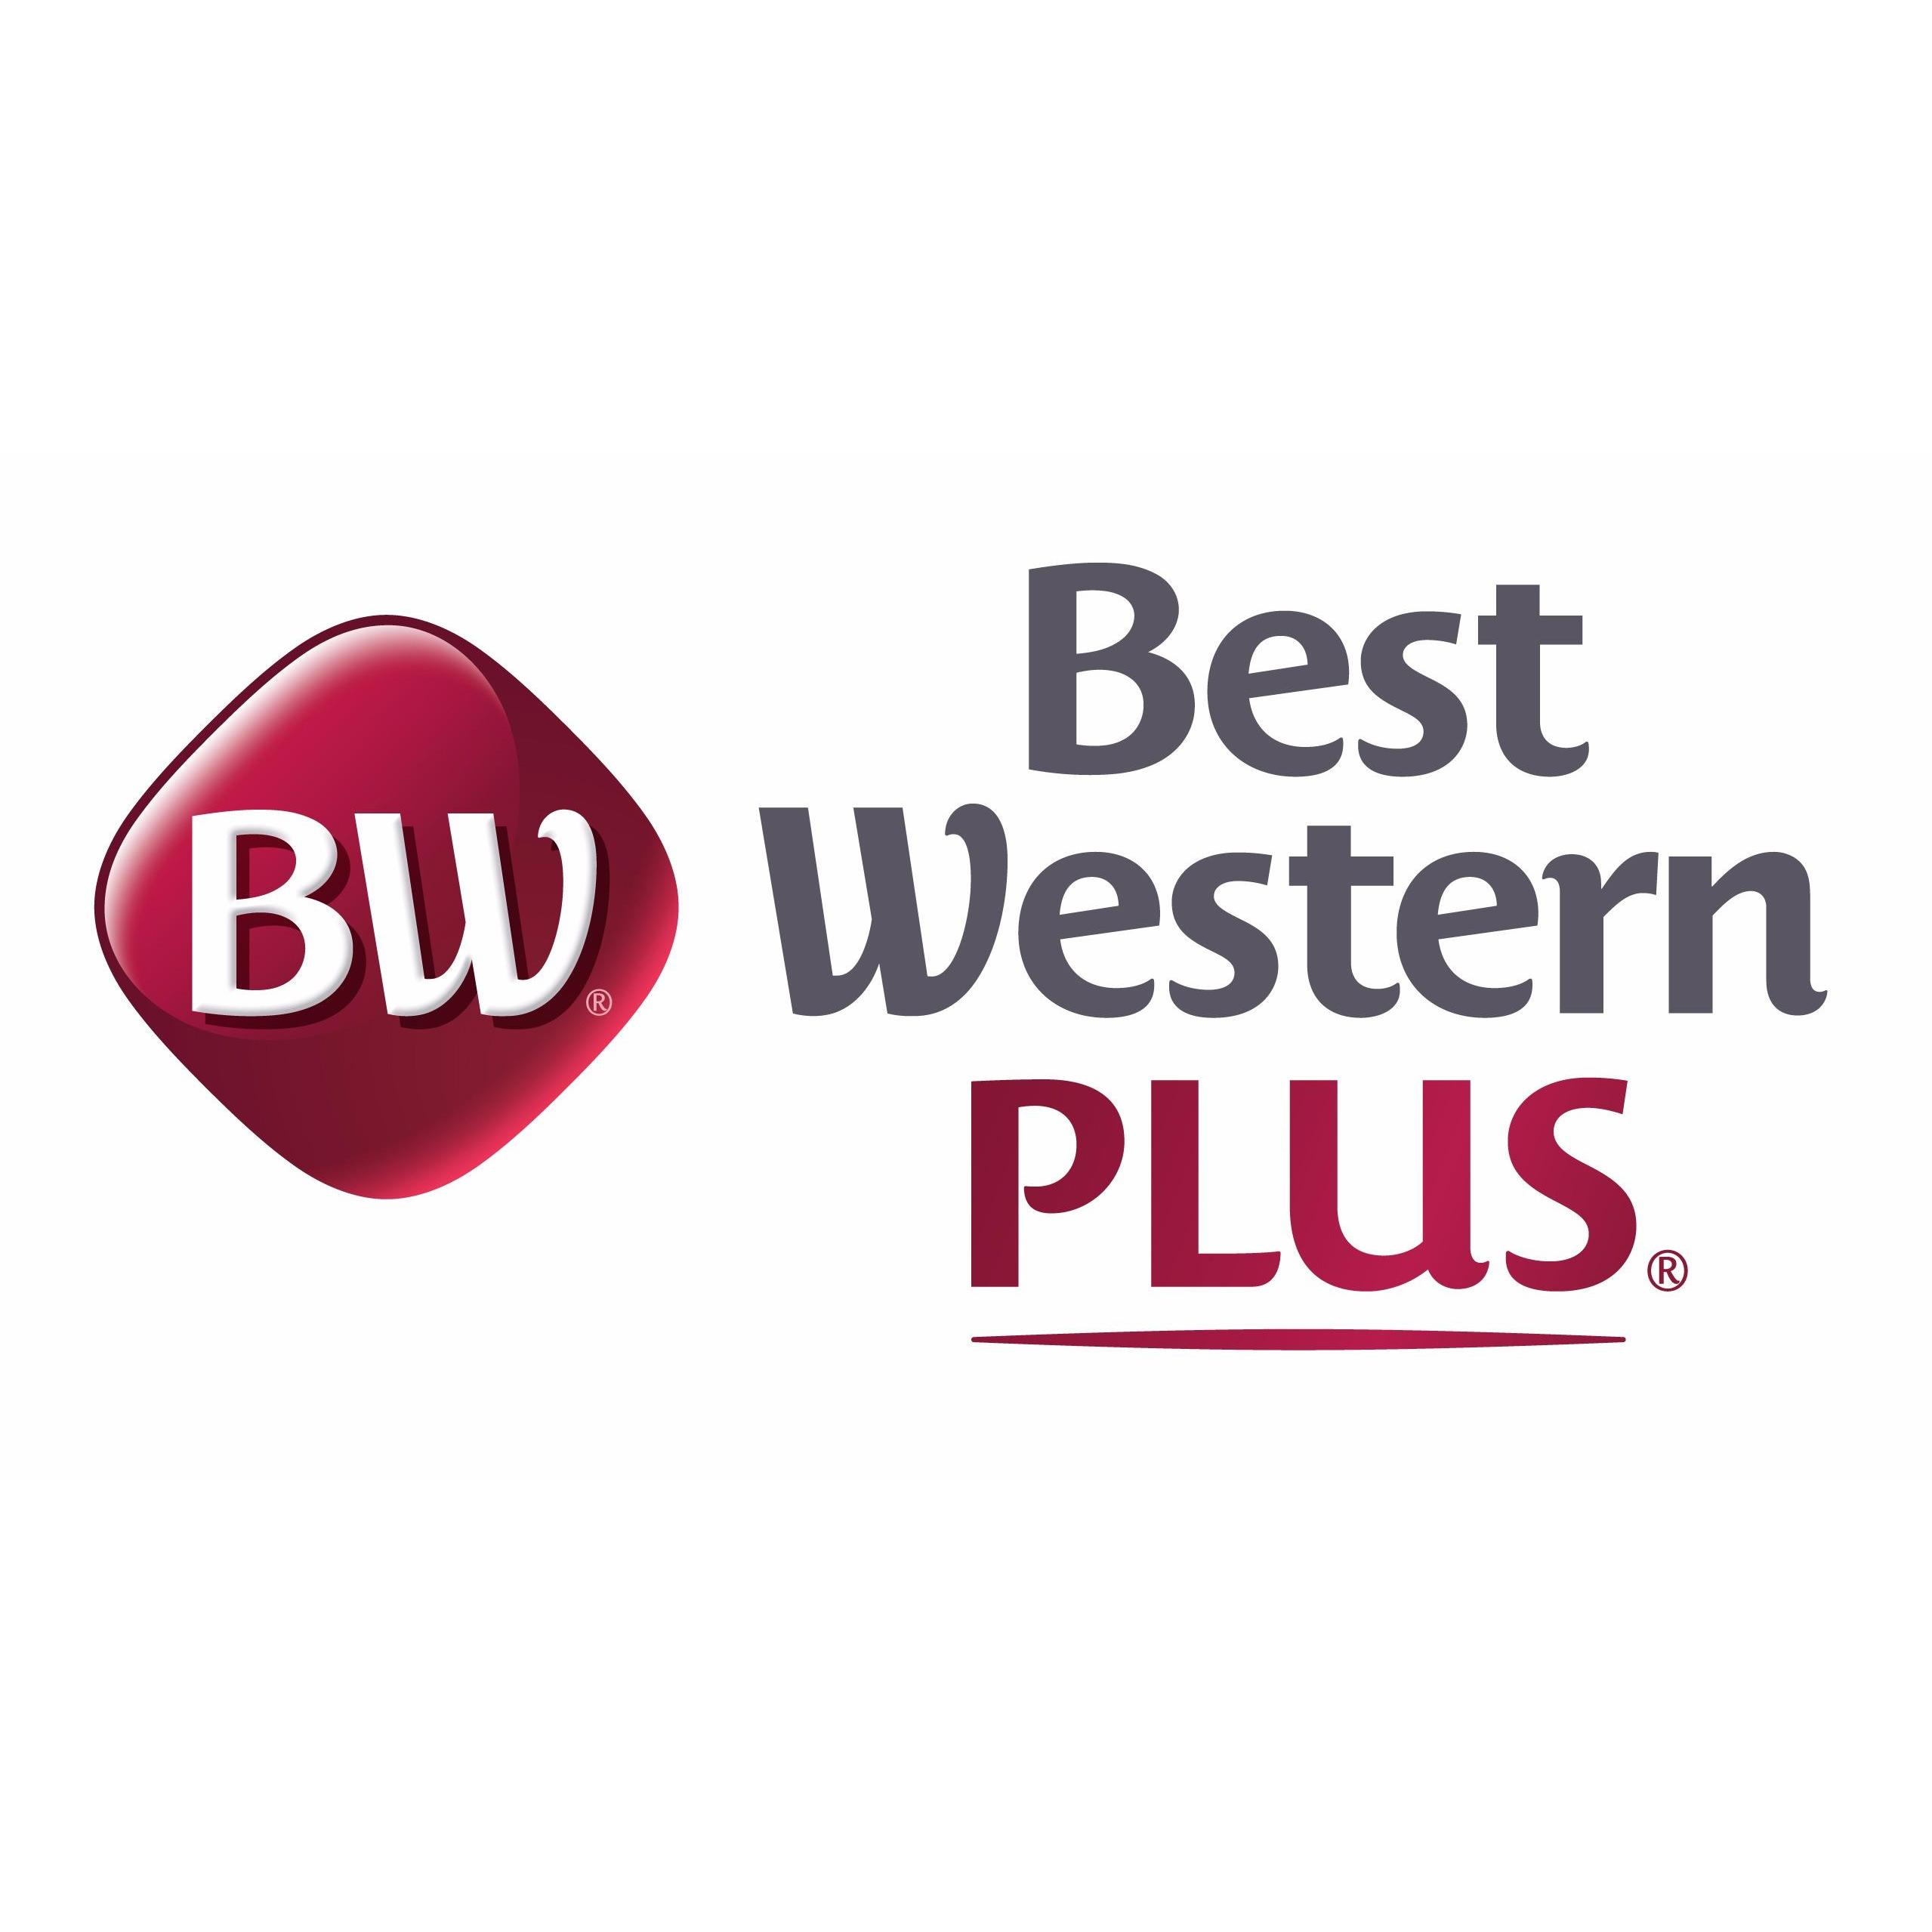 Best Western Plus Ruby's Inn - Bryce Canyon City, UT - Hotels & Motels